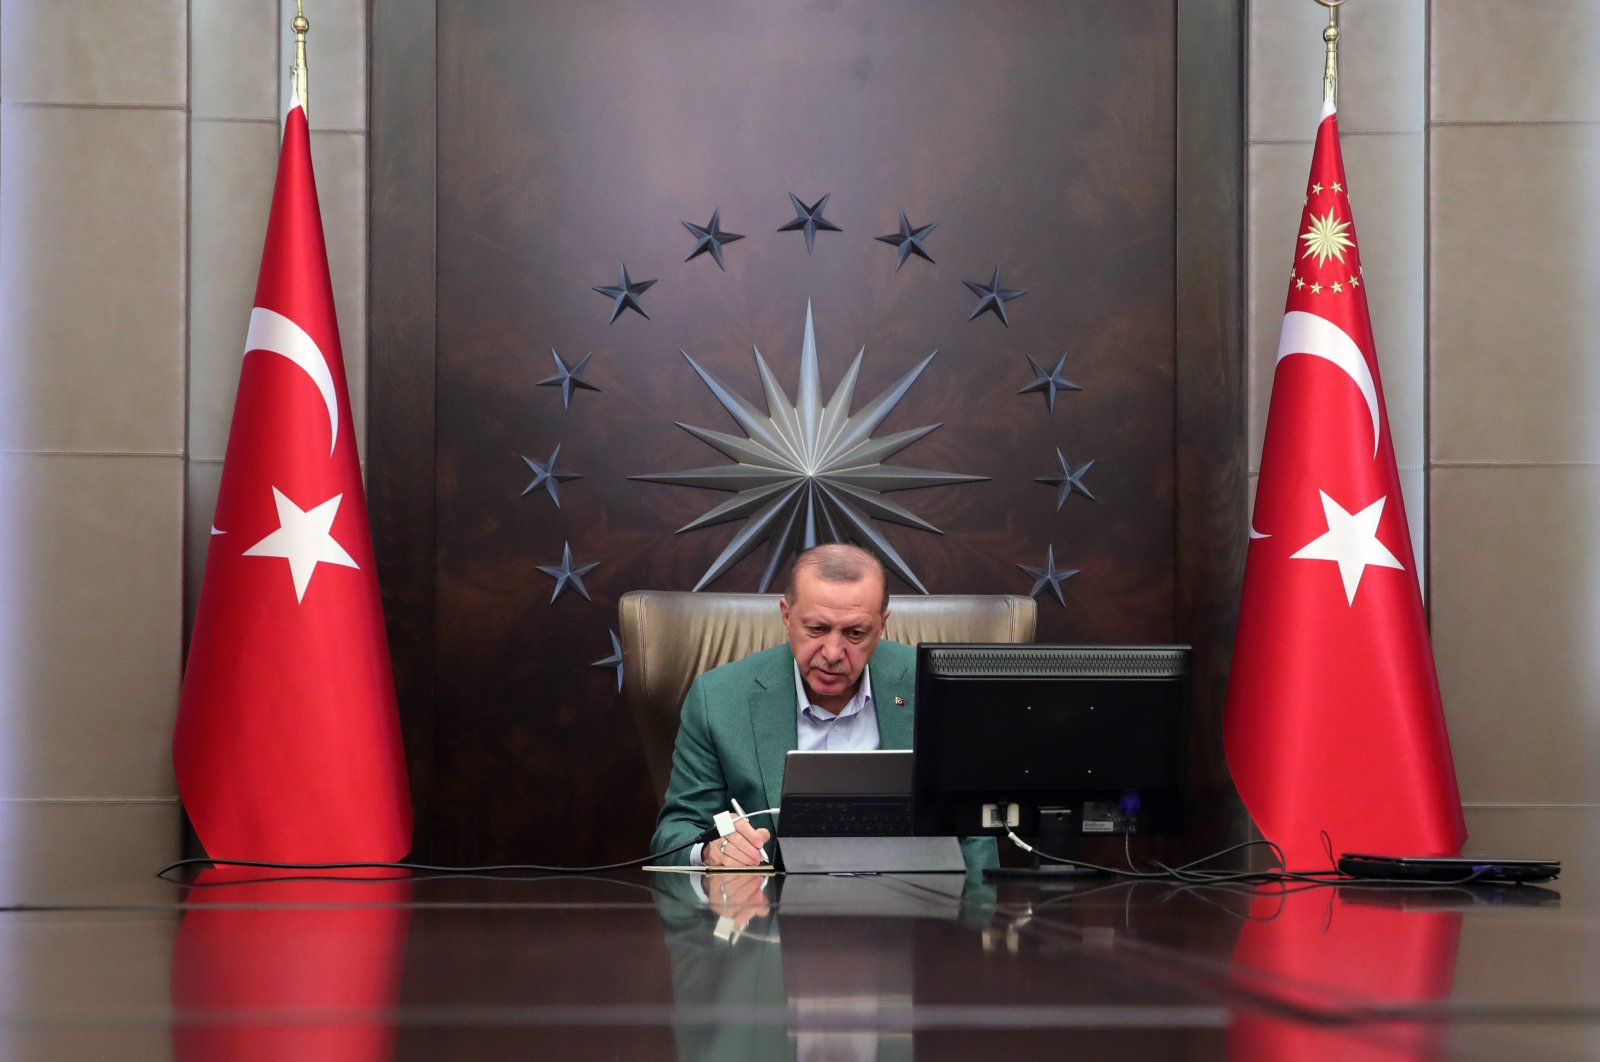 President Recep Tayyip Erdoğan participates in a teleconference with his Cabinet amid the coronavirus outbreak, in Ankara, Turkey, Monday, March 23, 2020. (IHA Photo)